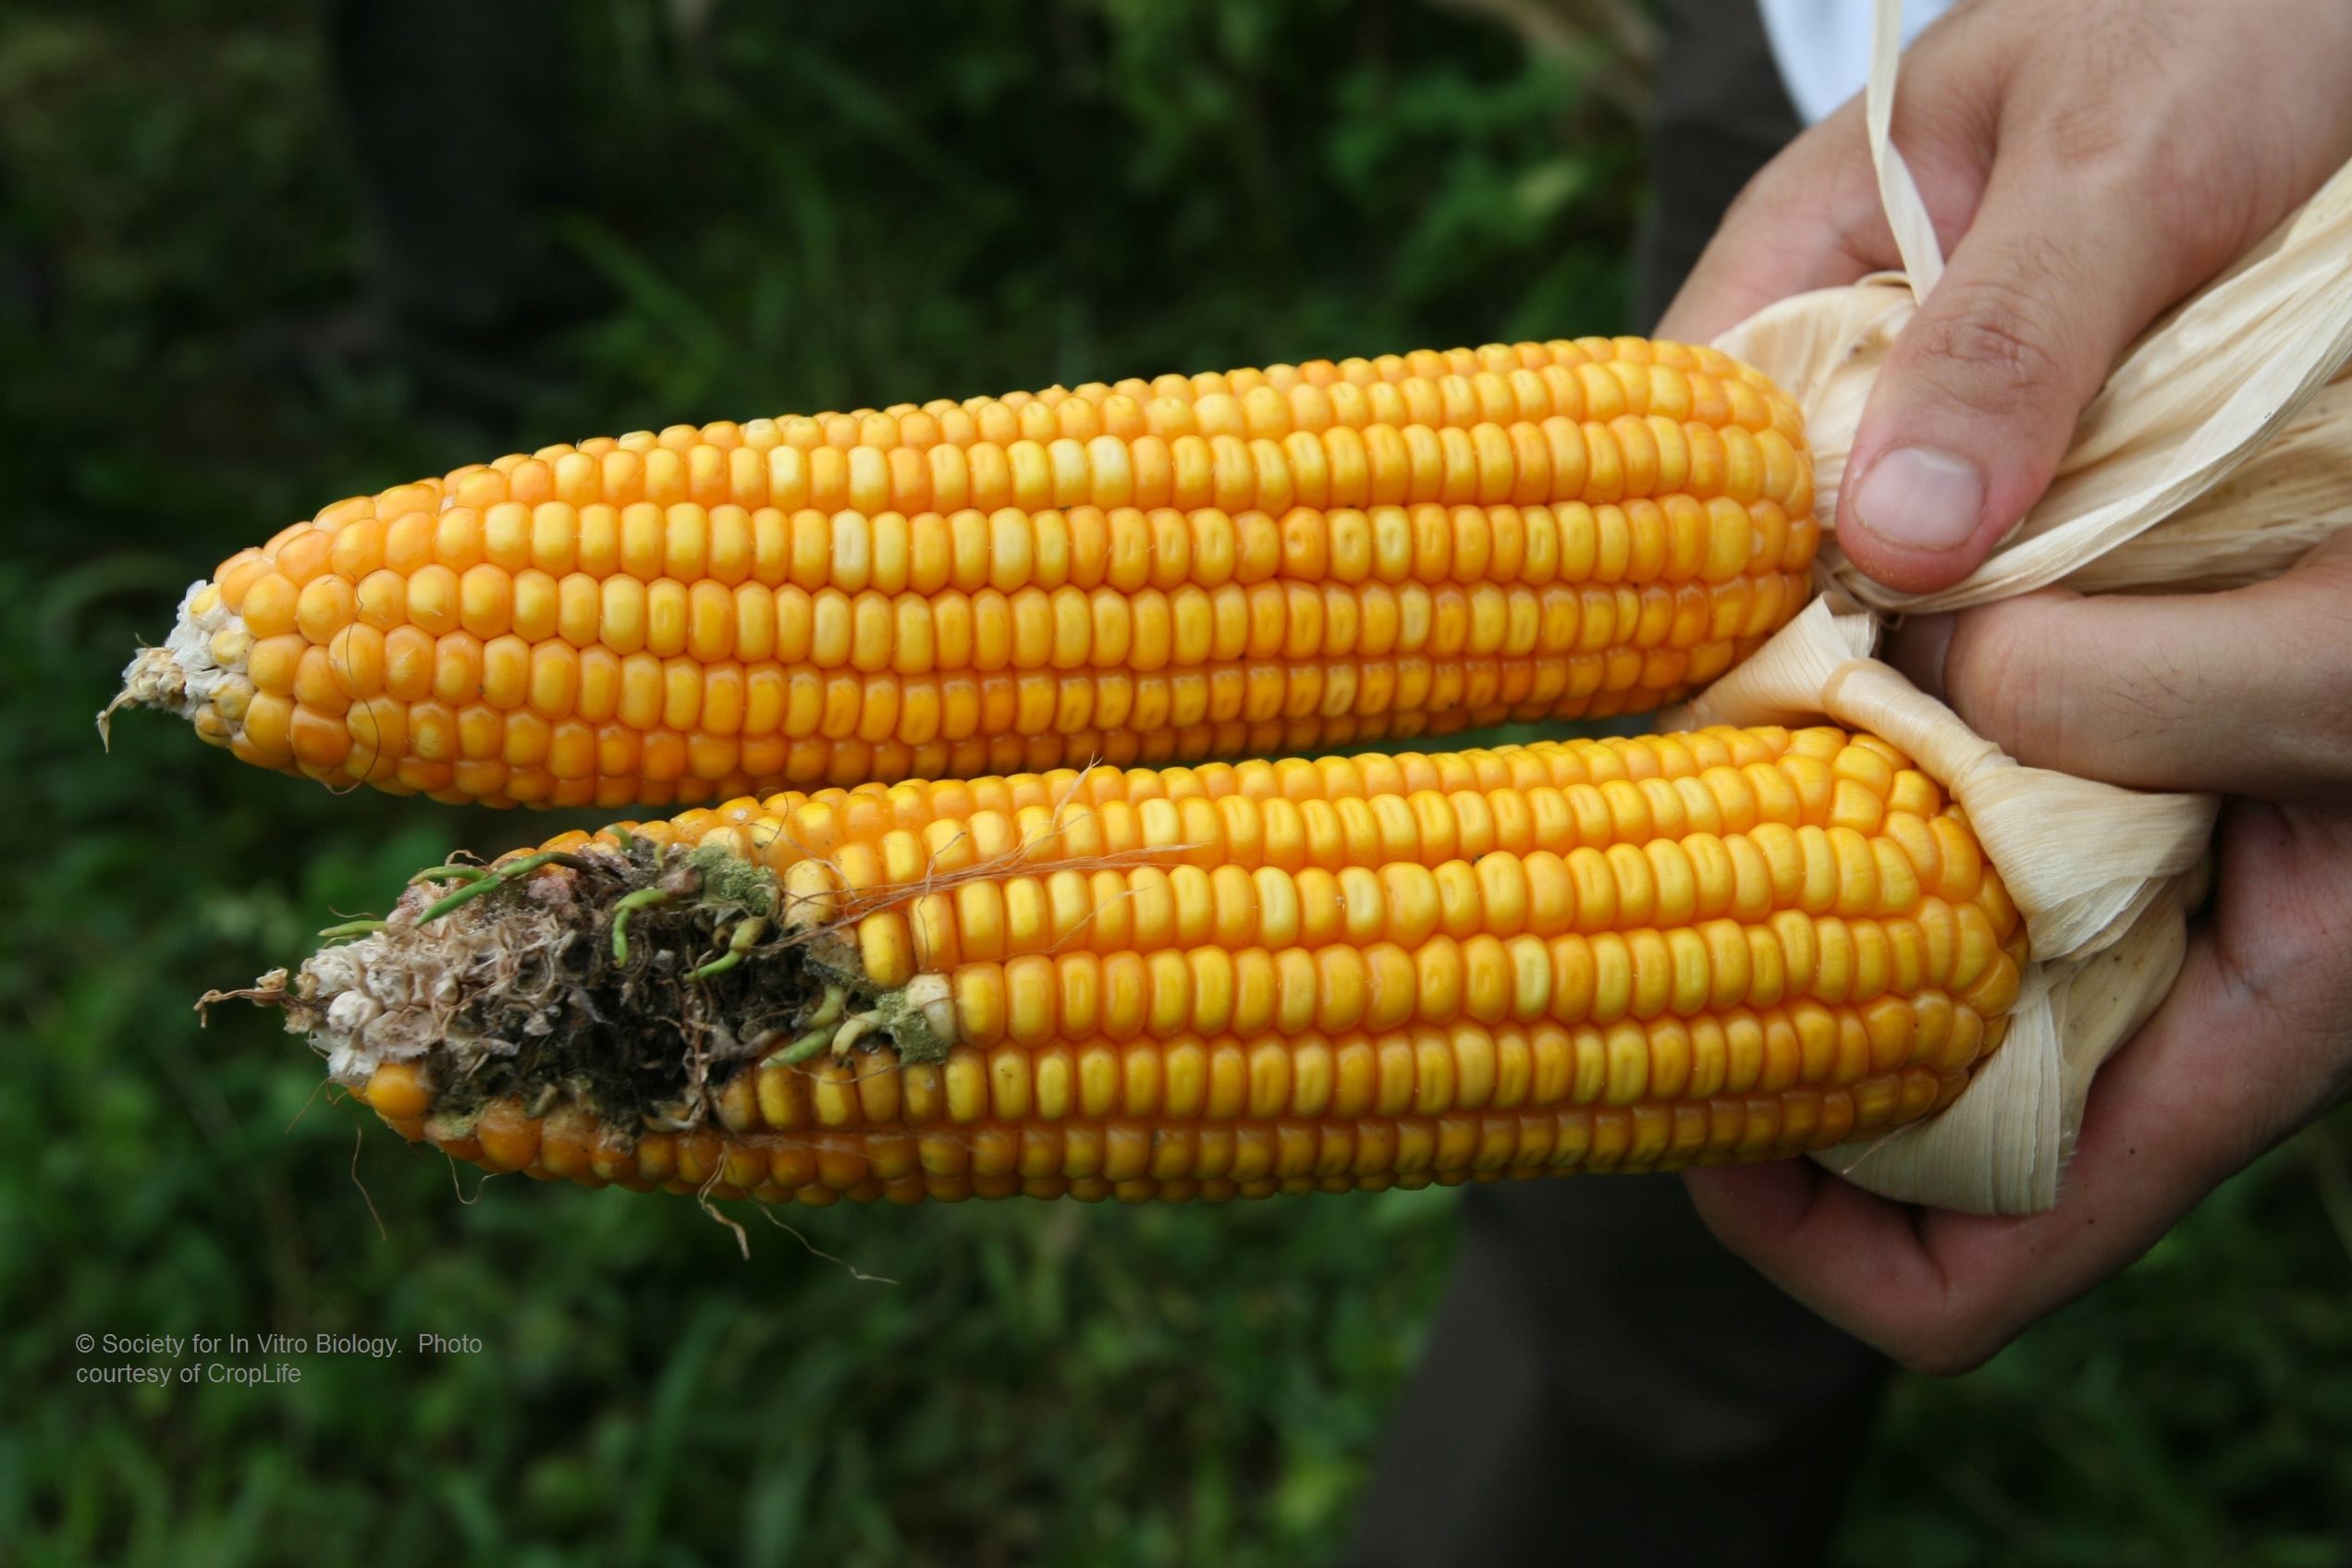 Ears of Corn: The top is GMO (Bt transgenic), and the bottom is non-GMO. The Asian corn borer has caused damage to the ear, resulting in fungal growth (mold) and sprouting. These varieties were grown in the Philippines.